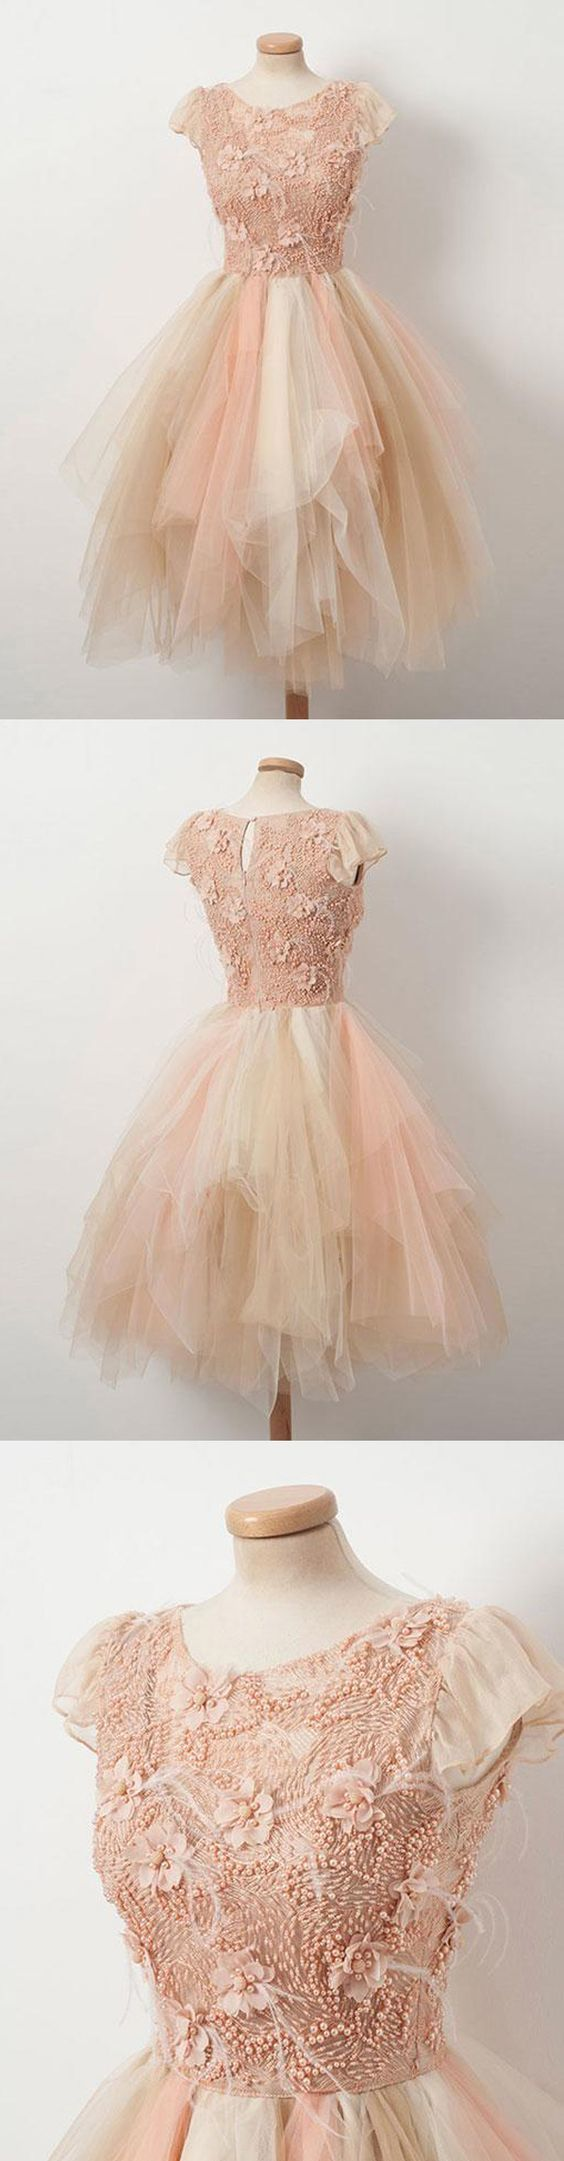 Vintage Knee Length Cap Sleeves Tiered Ruffled Champagne Tulle Homecoming Dress